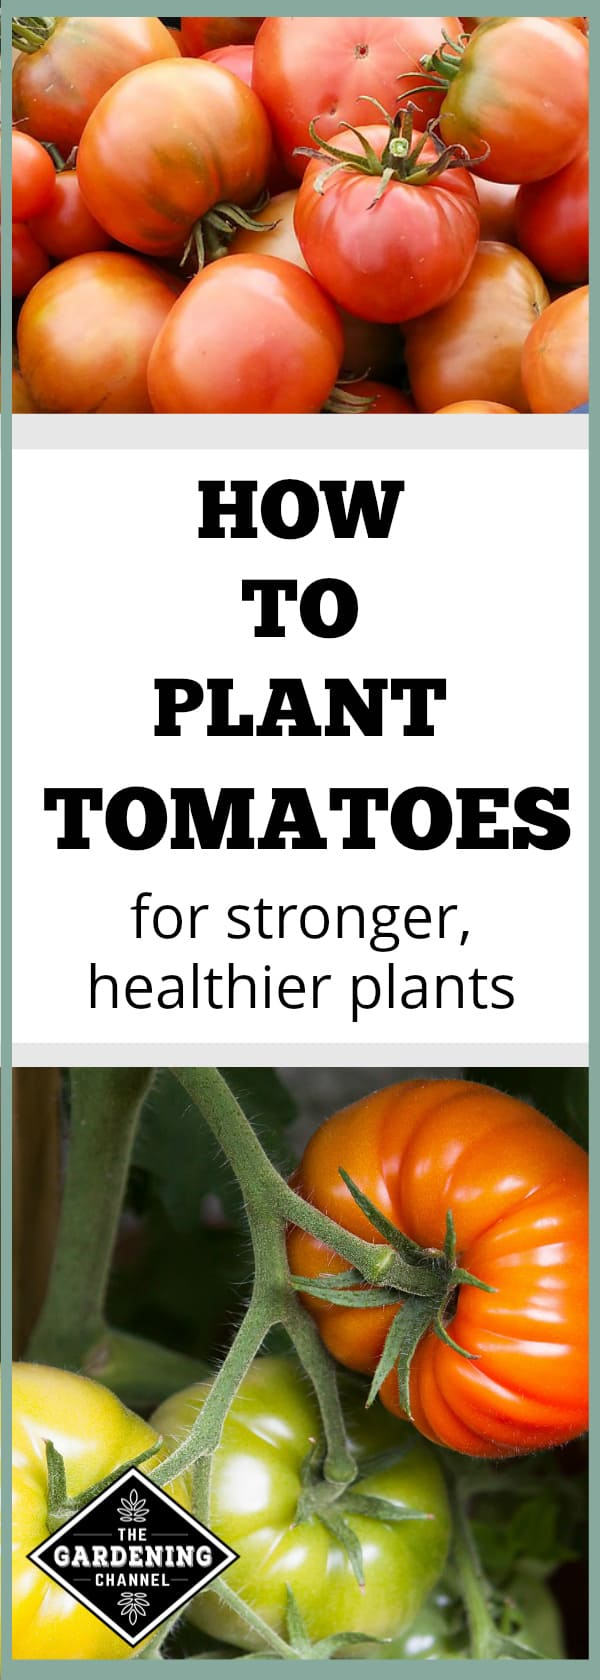 how to plant tomatoes correct way